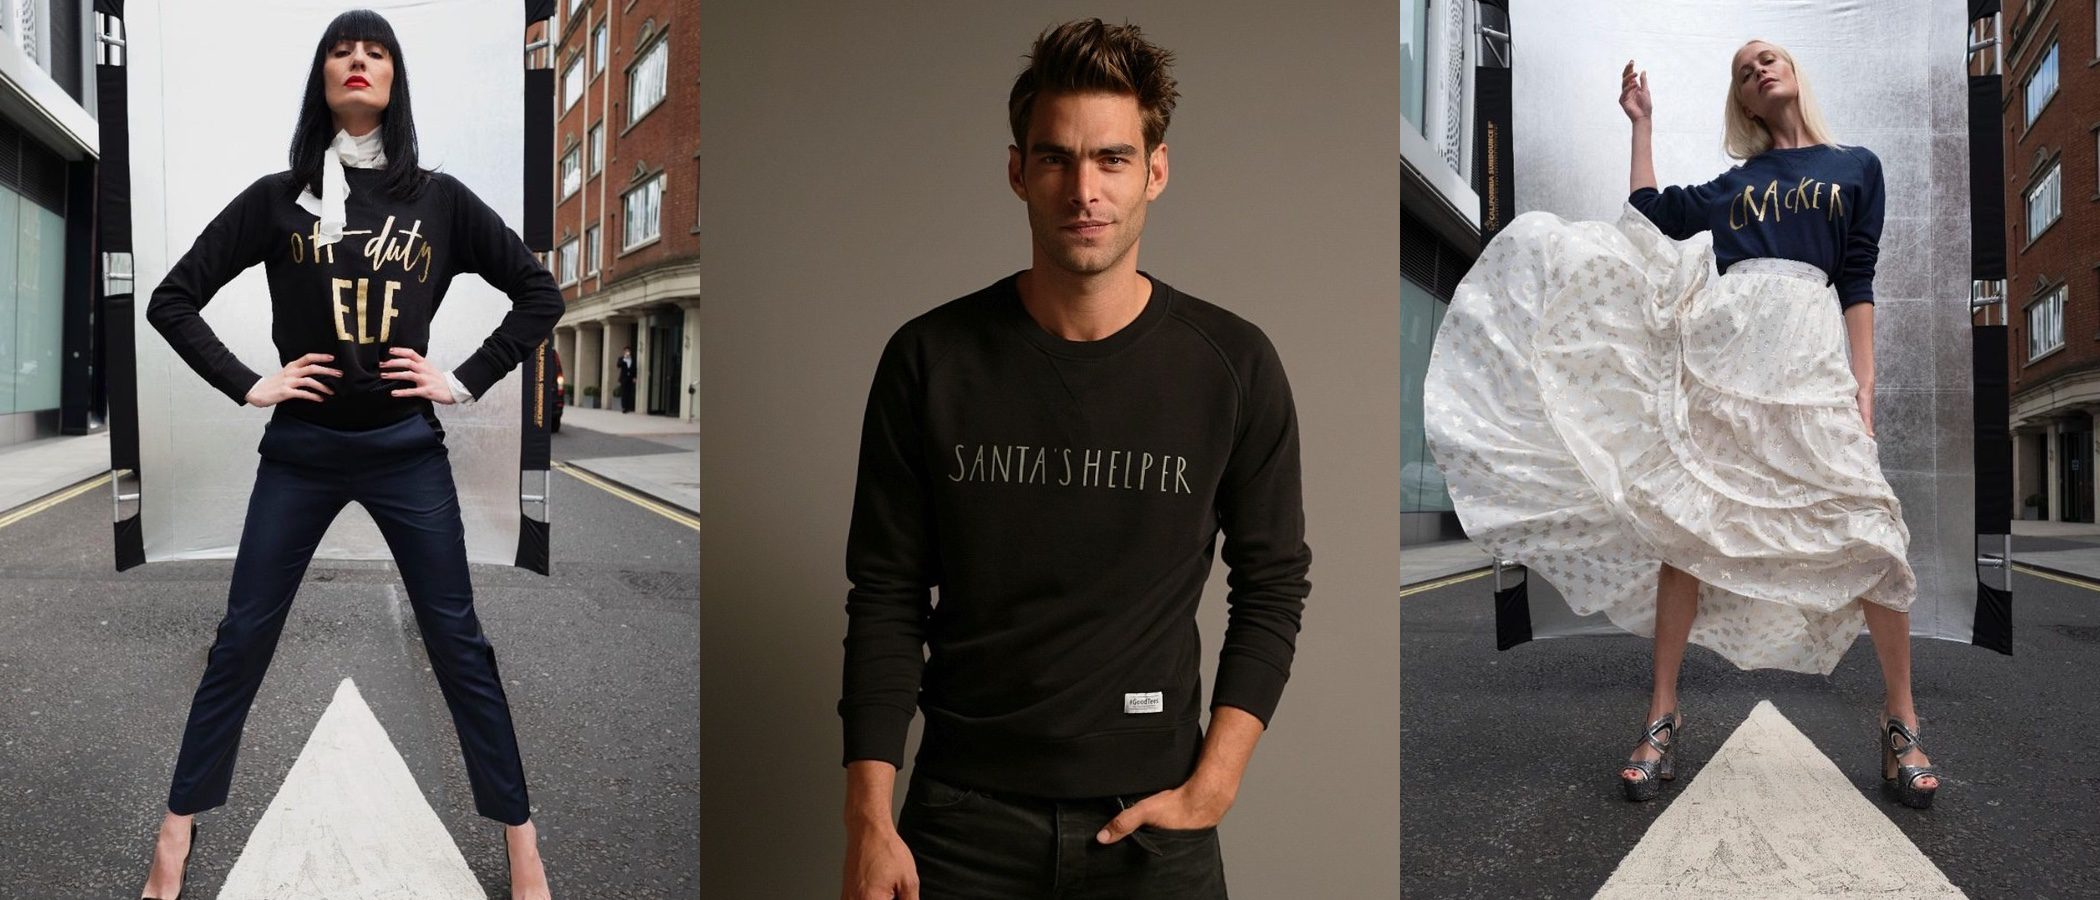 Save The Children lanza jerseys navideños diseñados por Poppy Delevingne y Jon Kortajarena